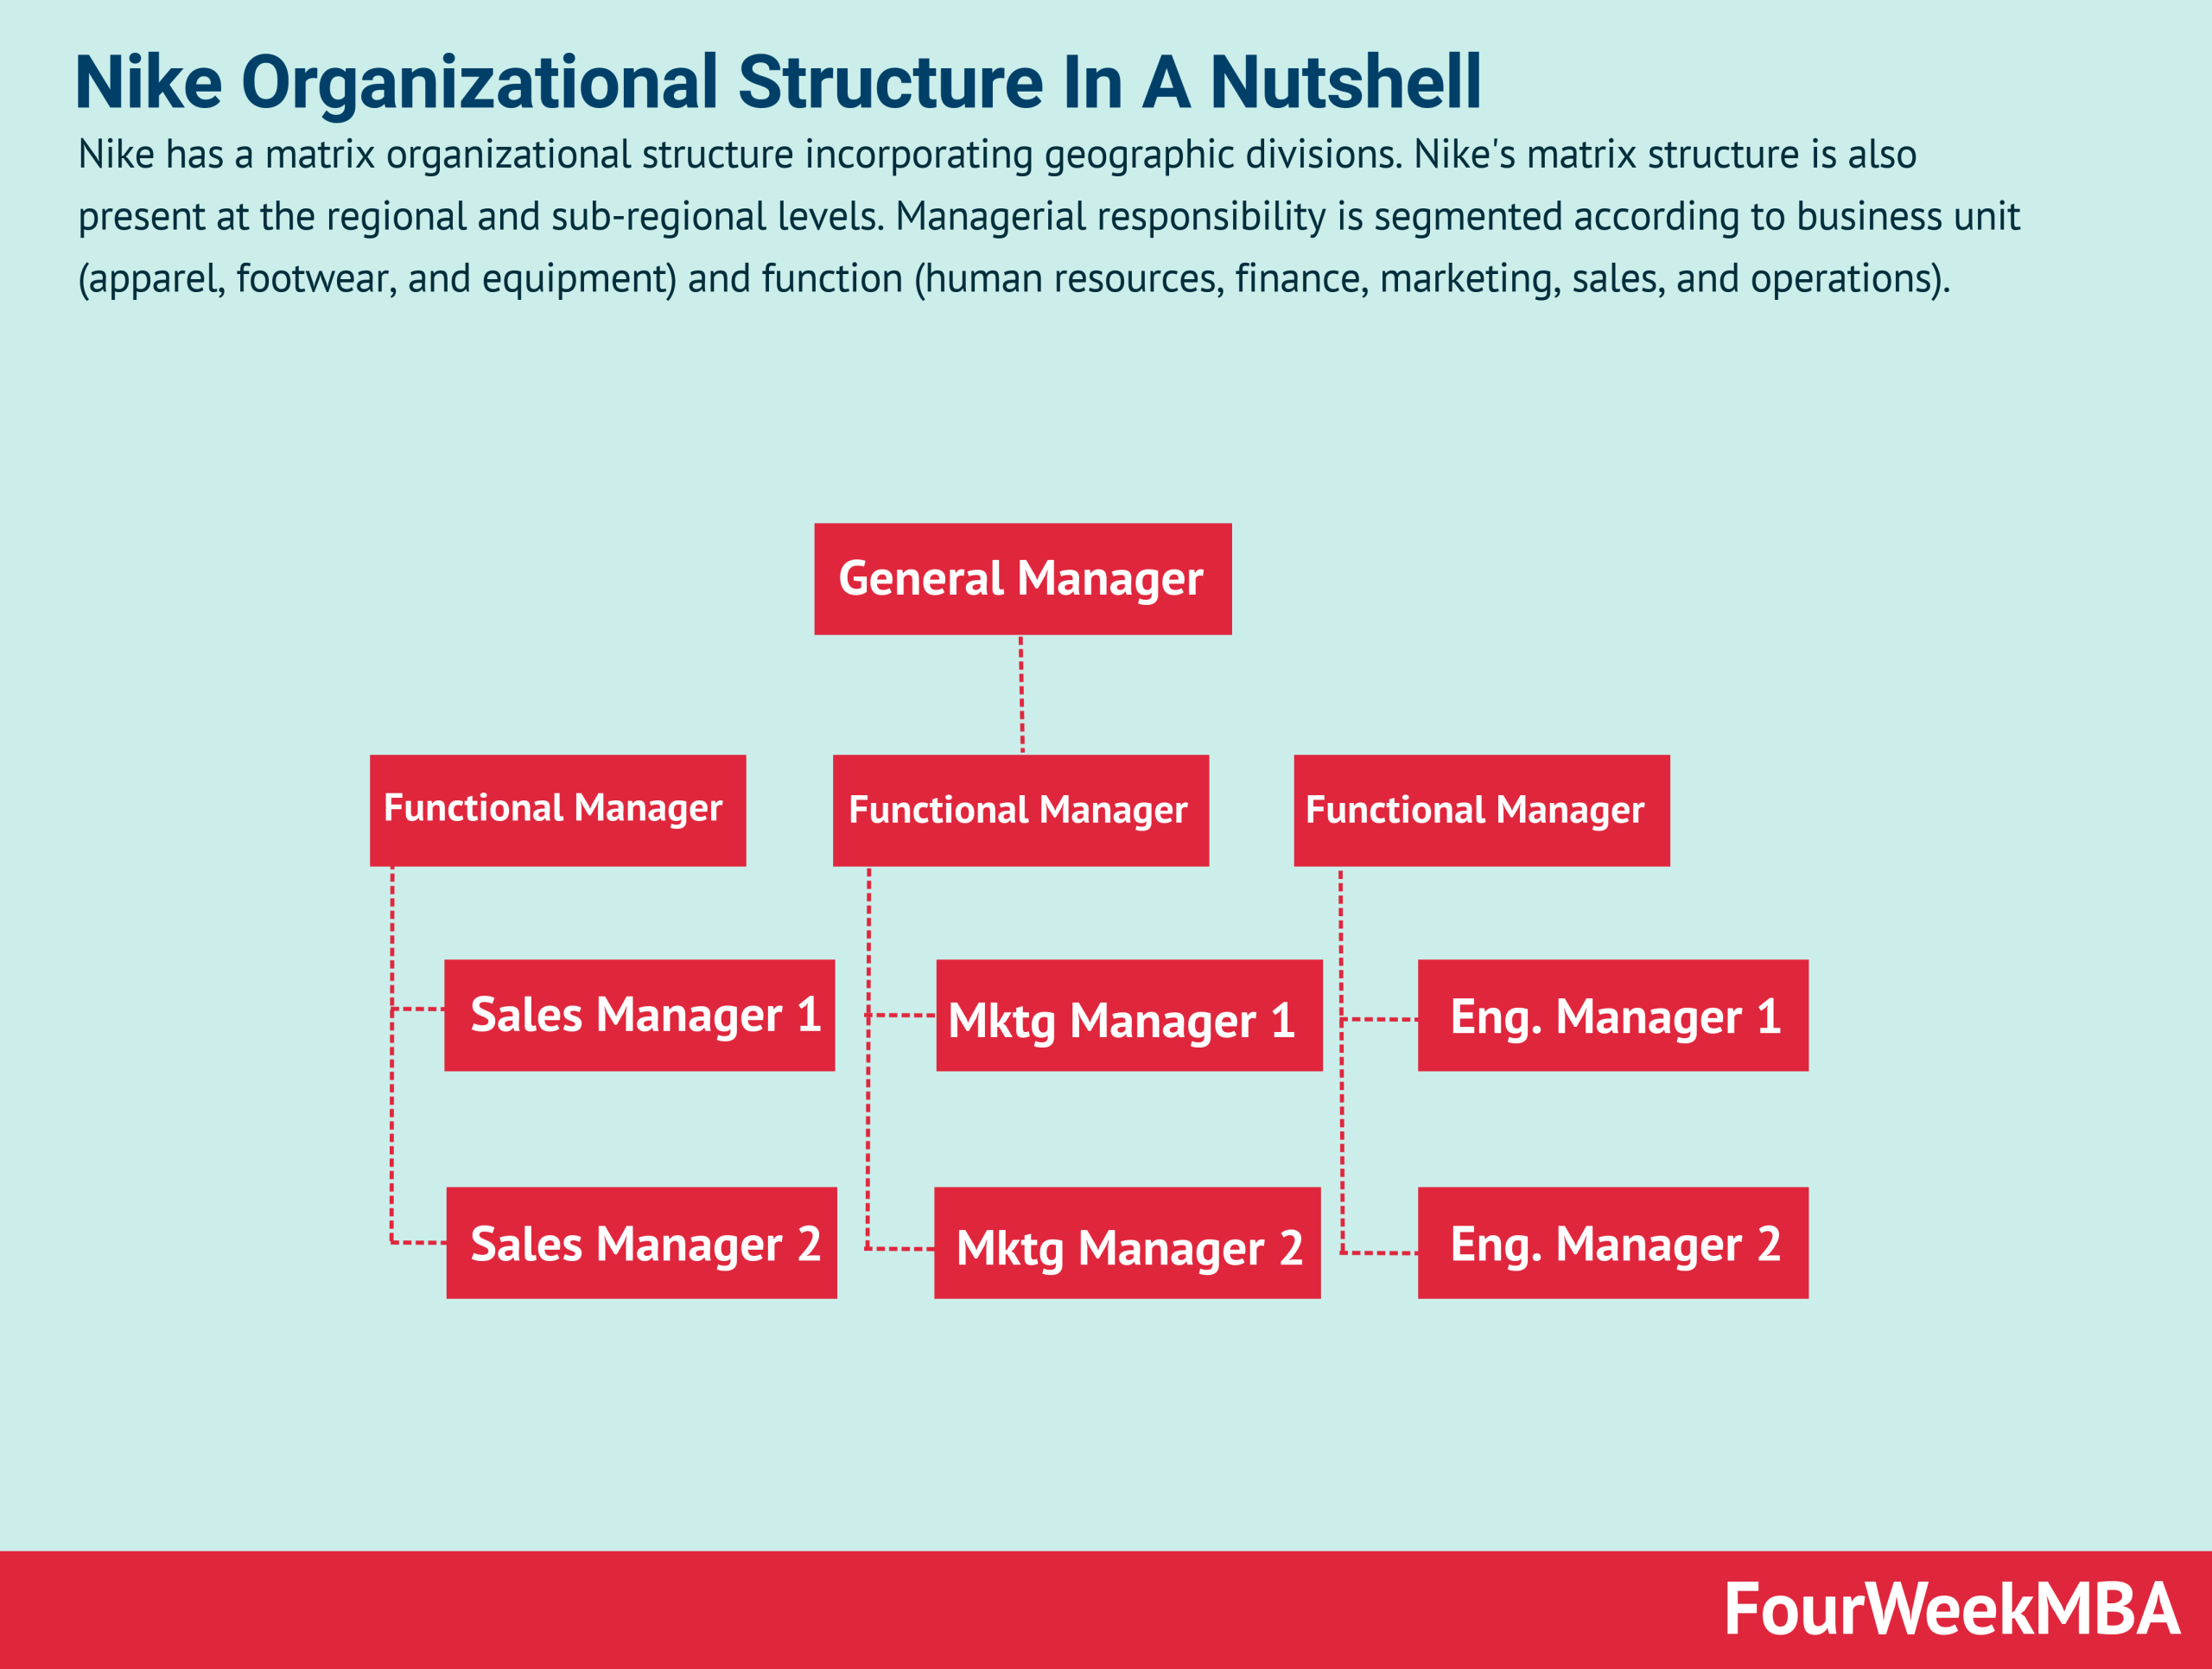 Nike Organizational Structure In A Nutshell